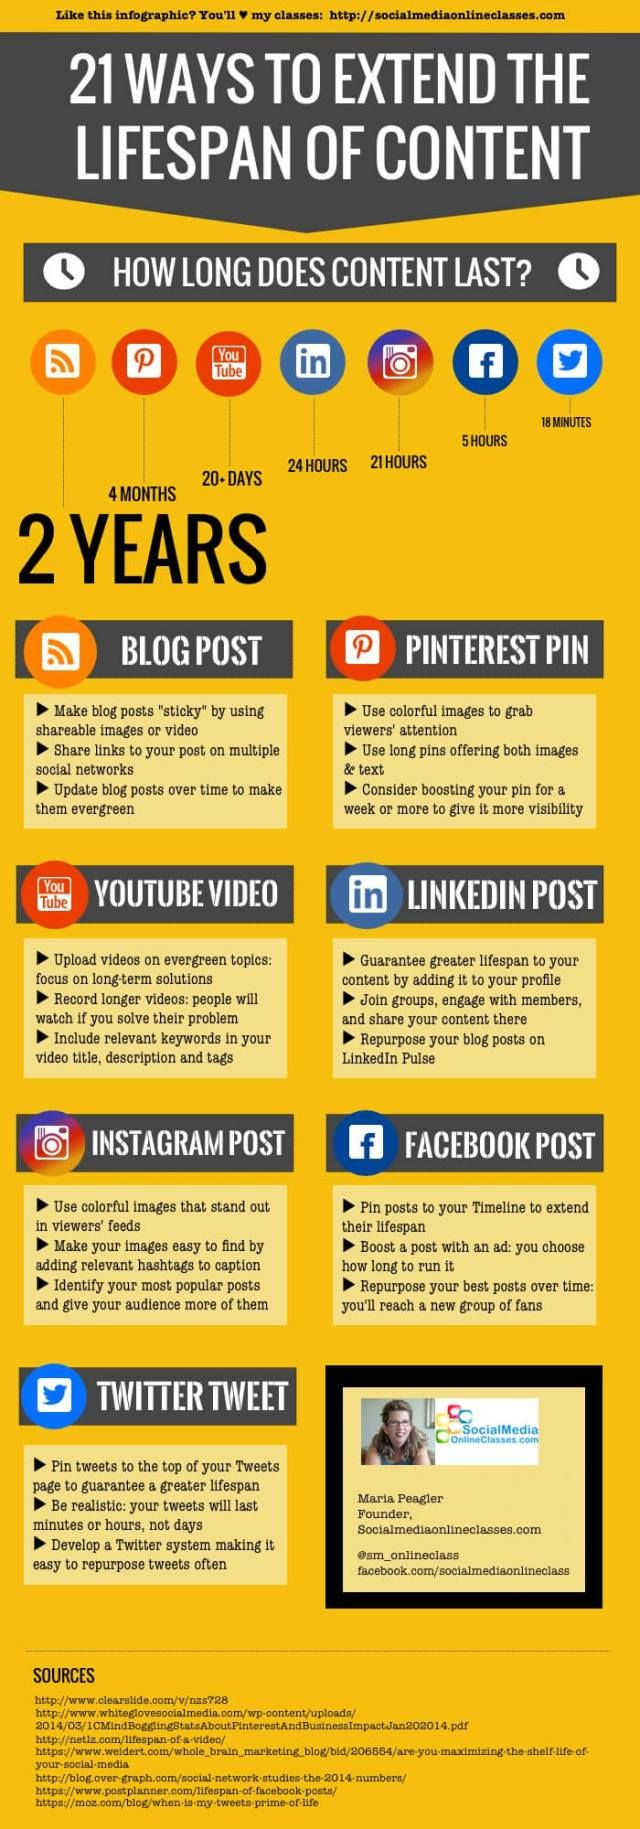 When you post something to Facebook or Twitter, how long does it last? What's the lifespan of a social media post on LinkedIn, YouTube or Instagram?